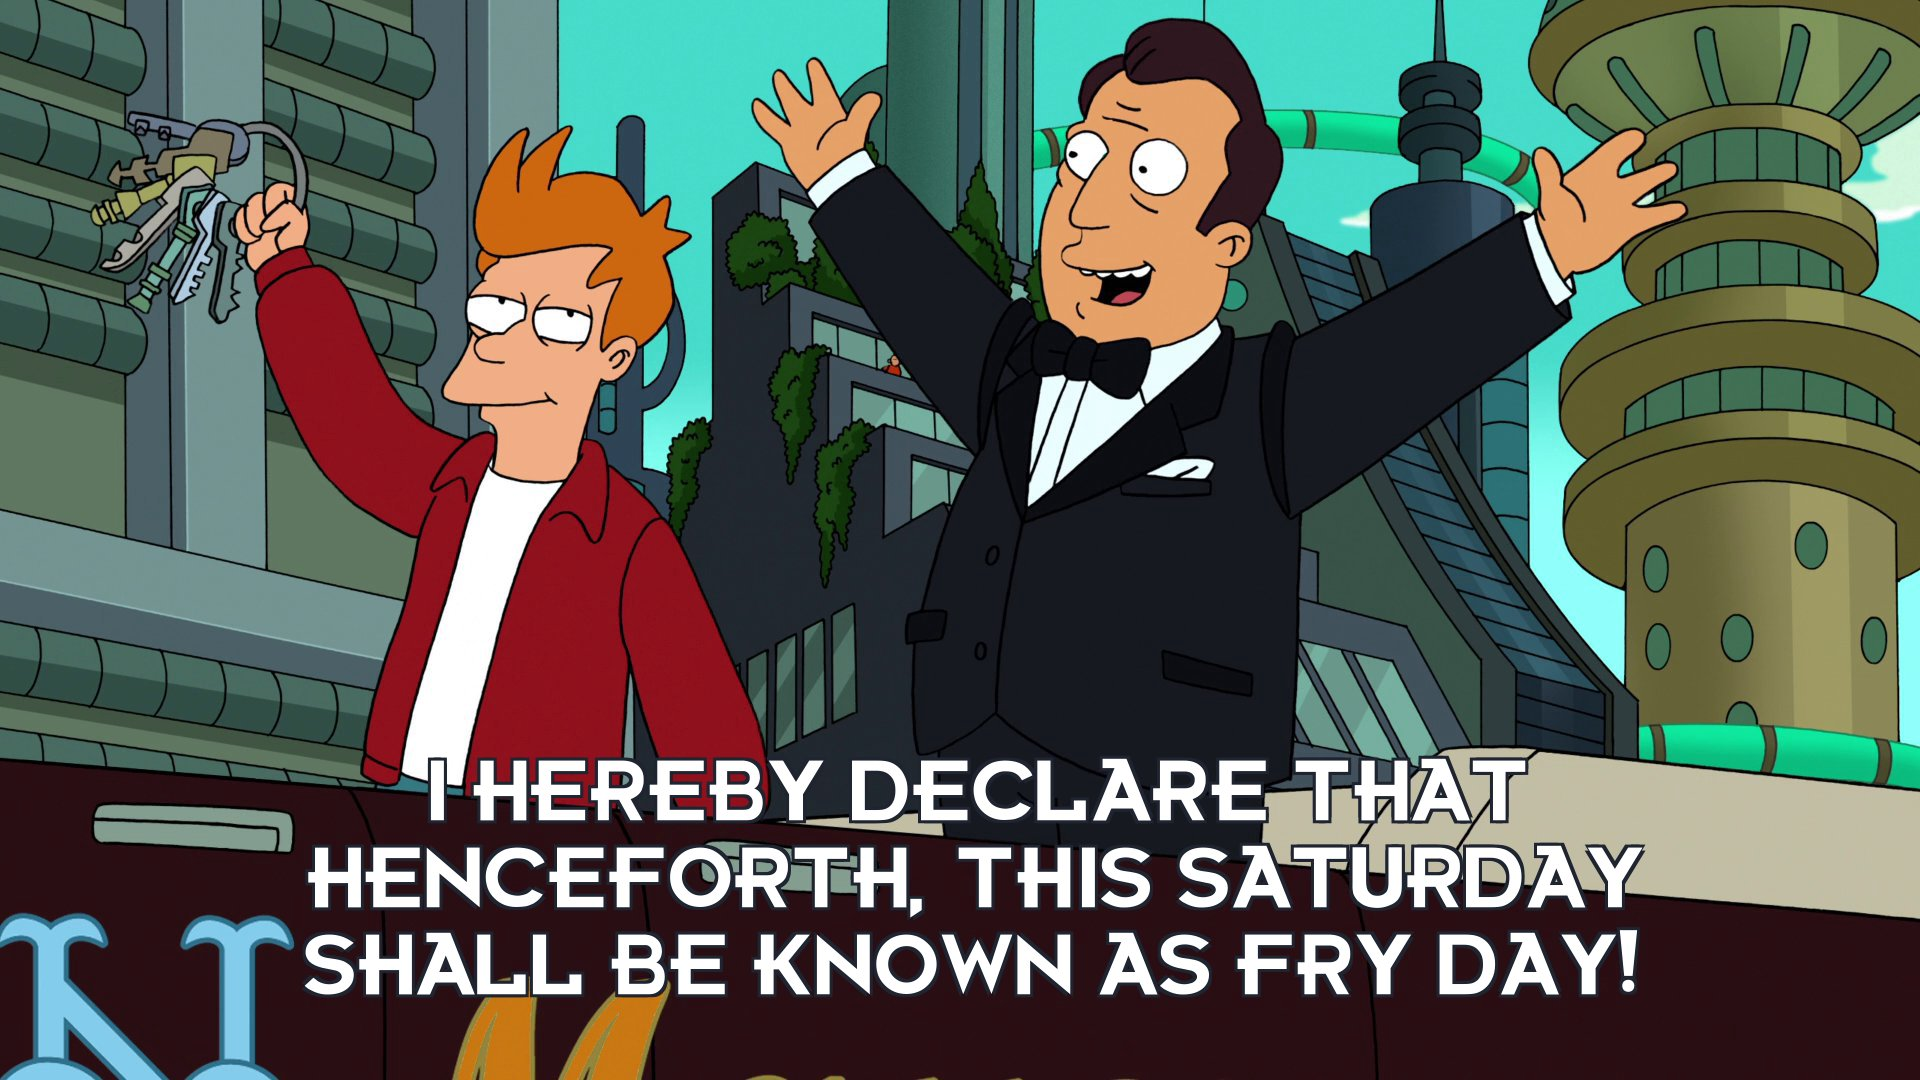 Mayor C Randall Poopenmeyer: I hereby declare that henceforth, this Saturday shall be known as Fry Day!